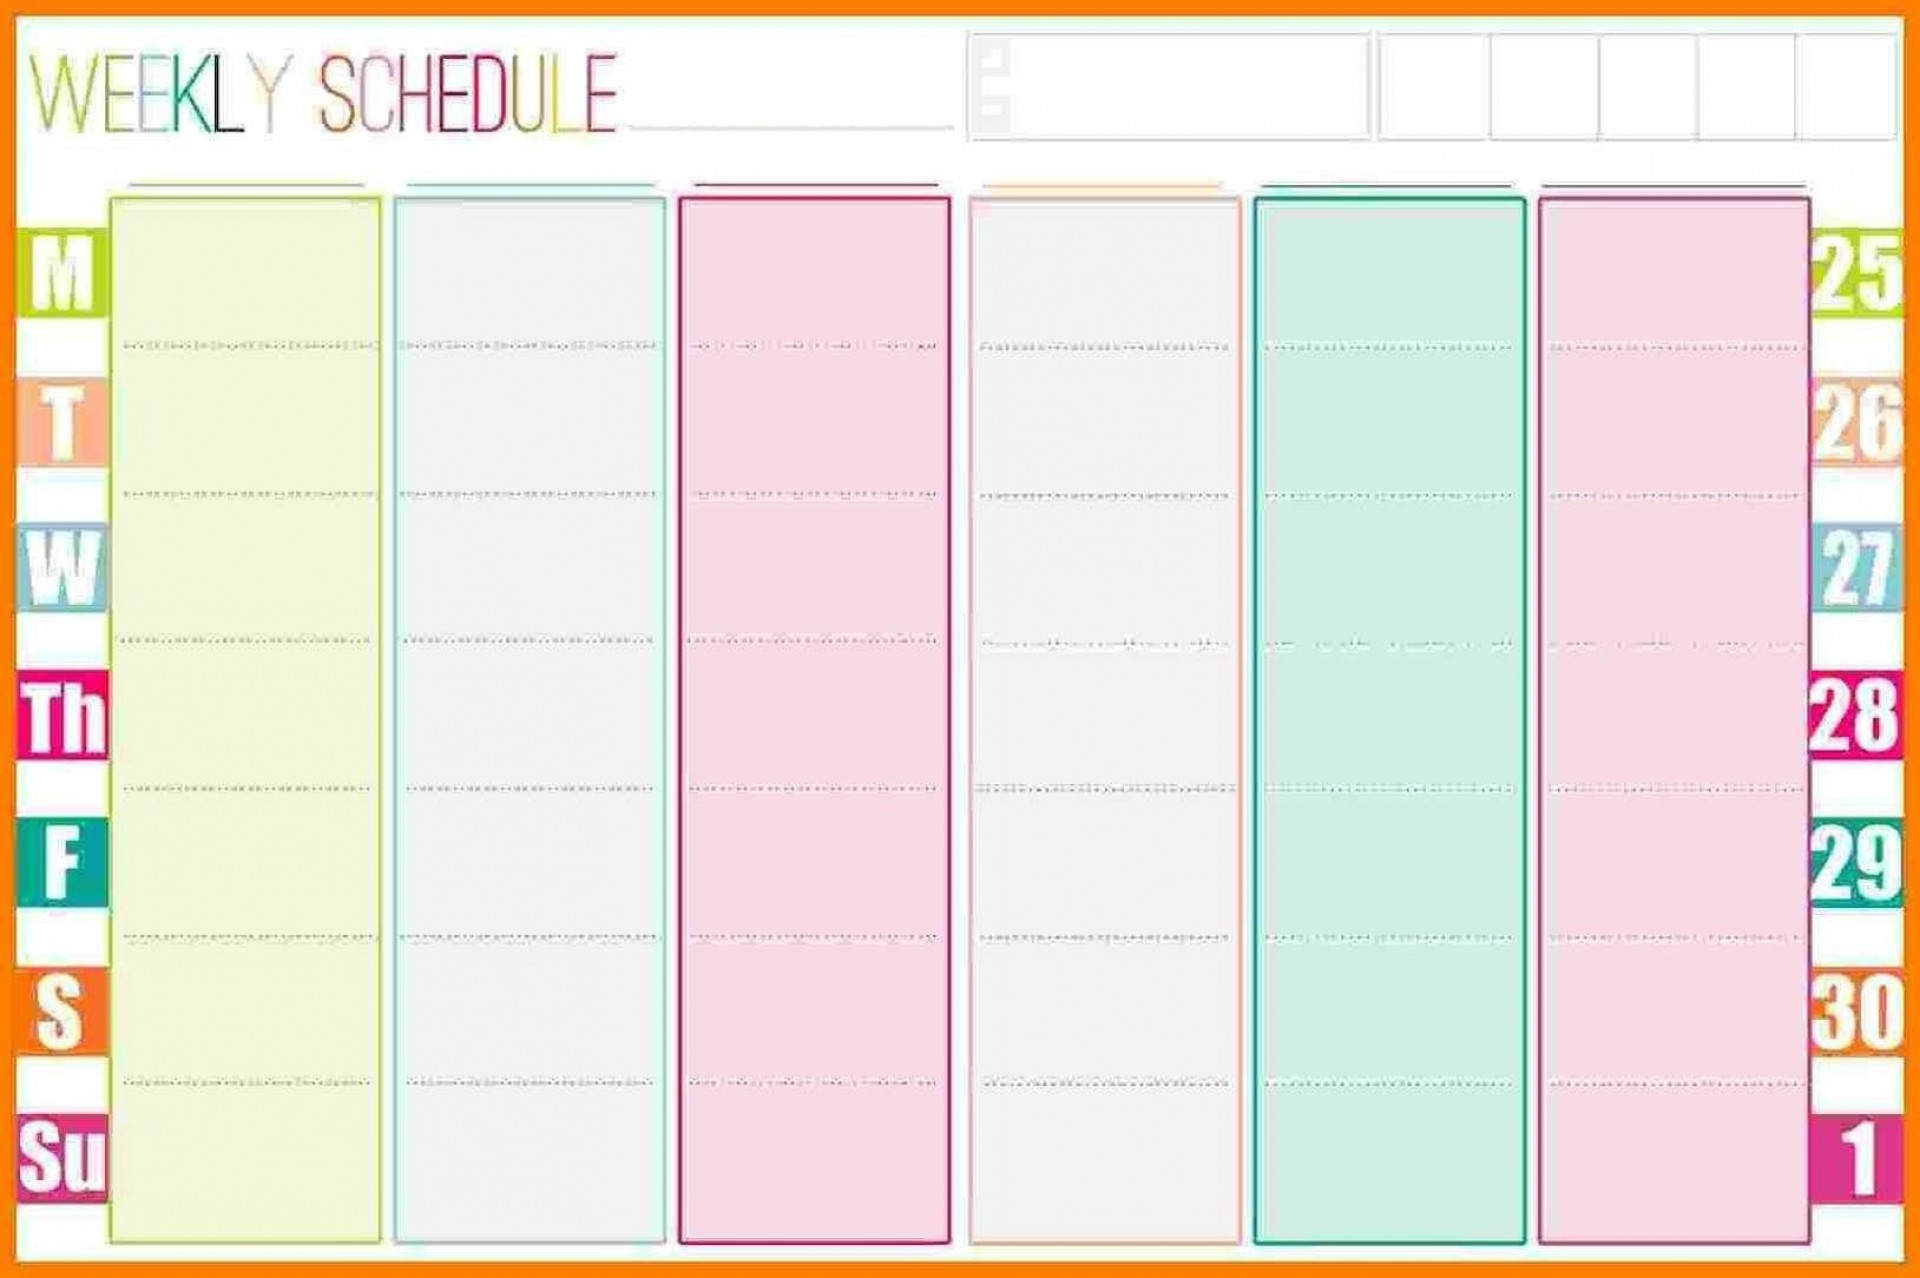 005 Awful Excel Weekly Planner Template 2019 Picture  Holiday1920